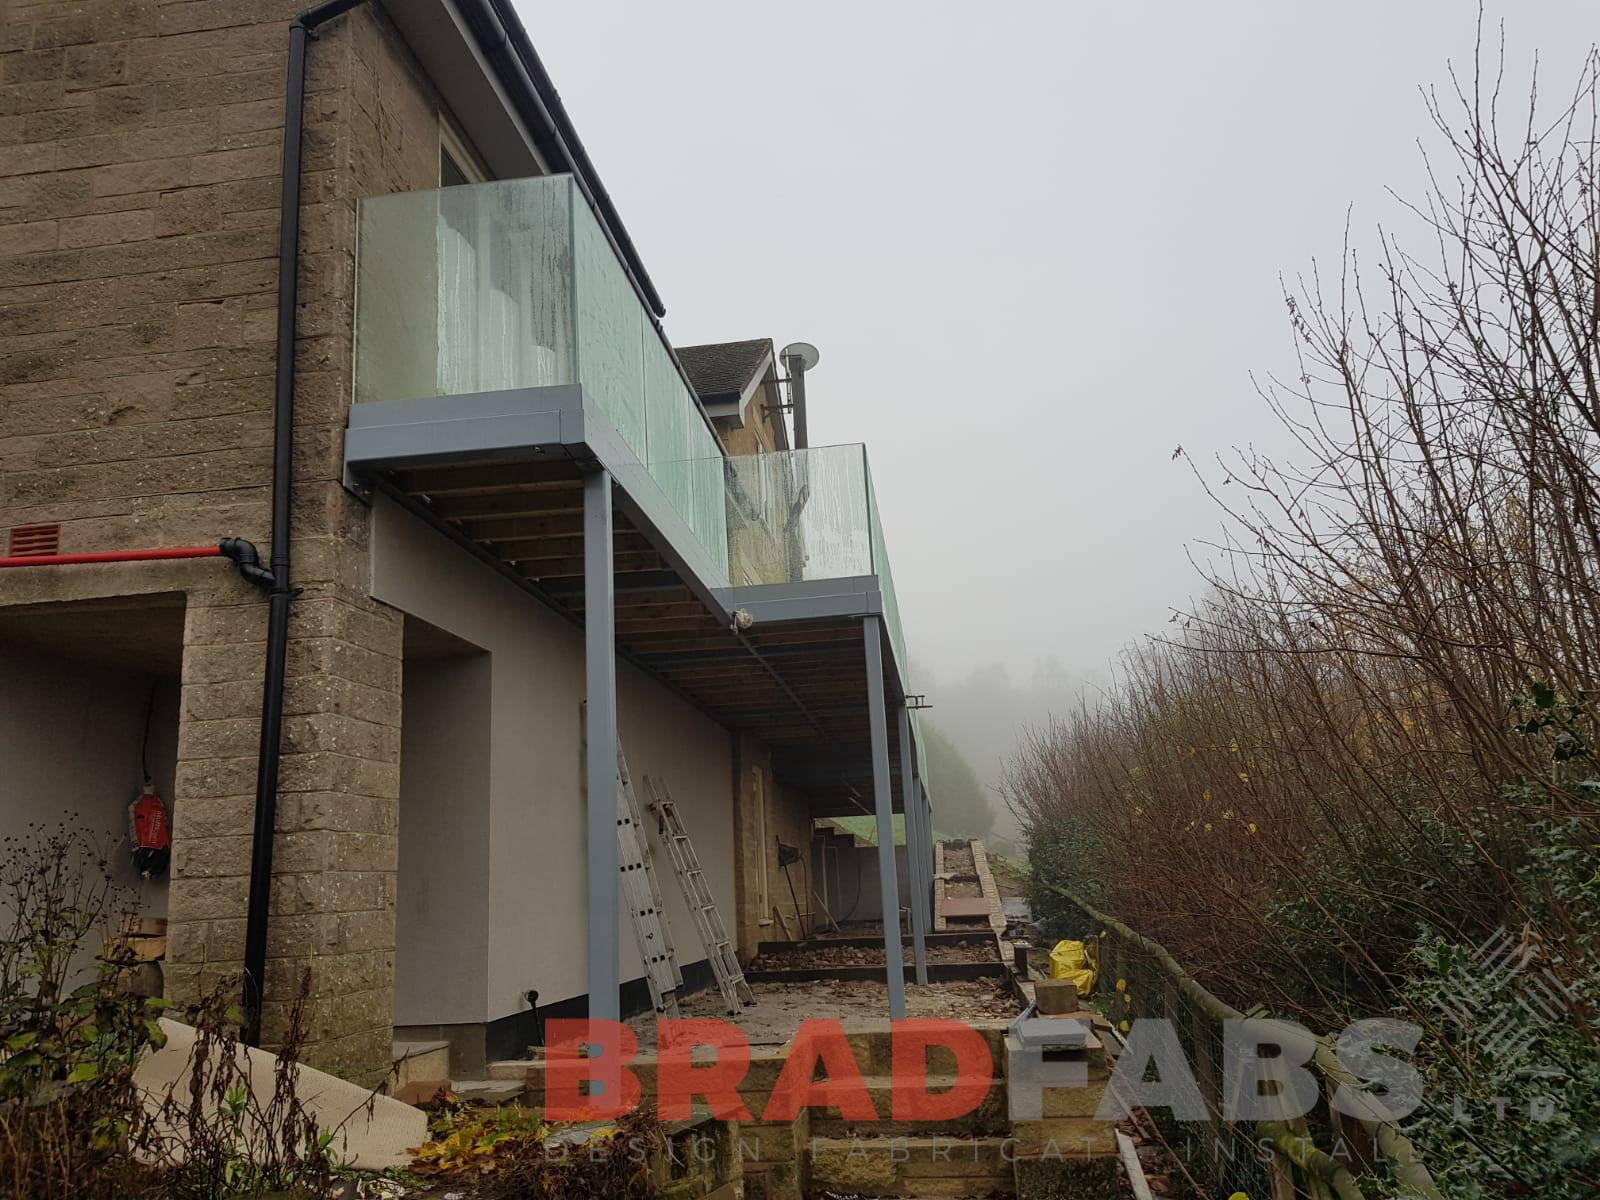 Glass and metal balcony installed and manufactured by Bradfabs